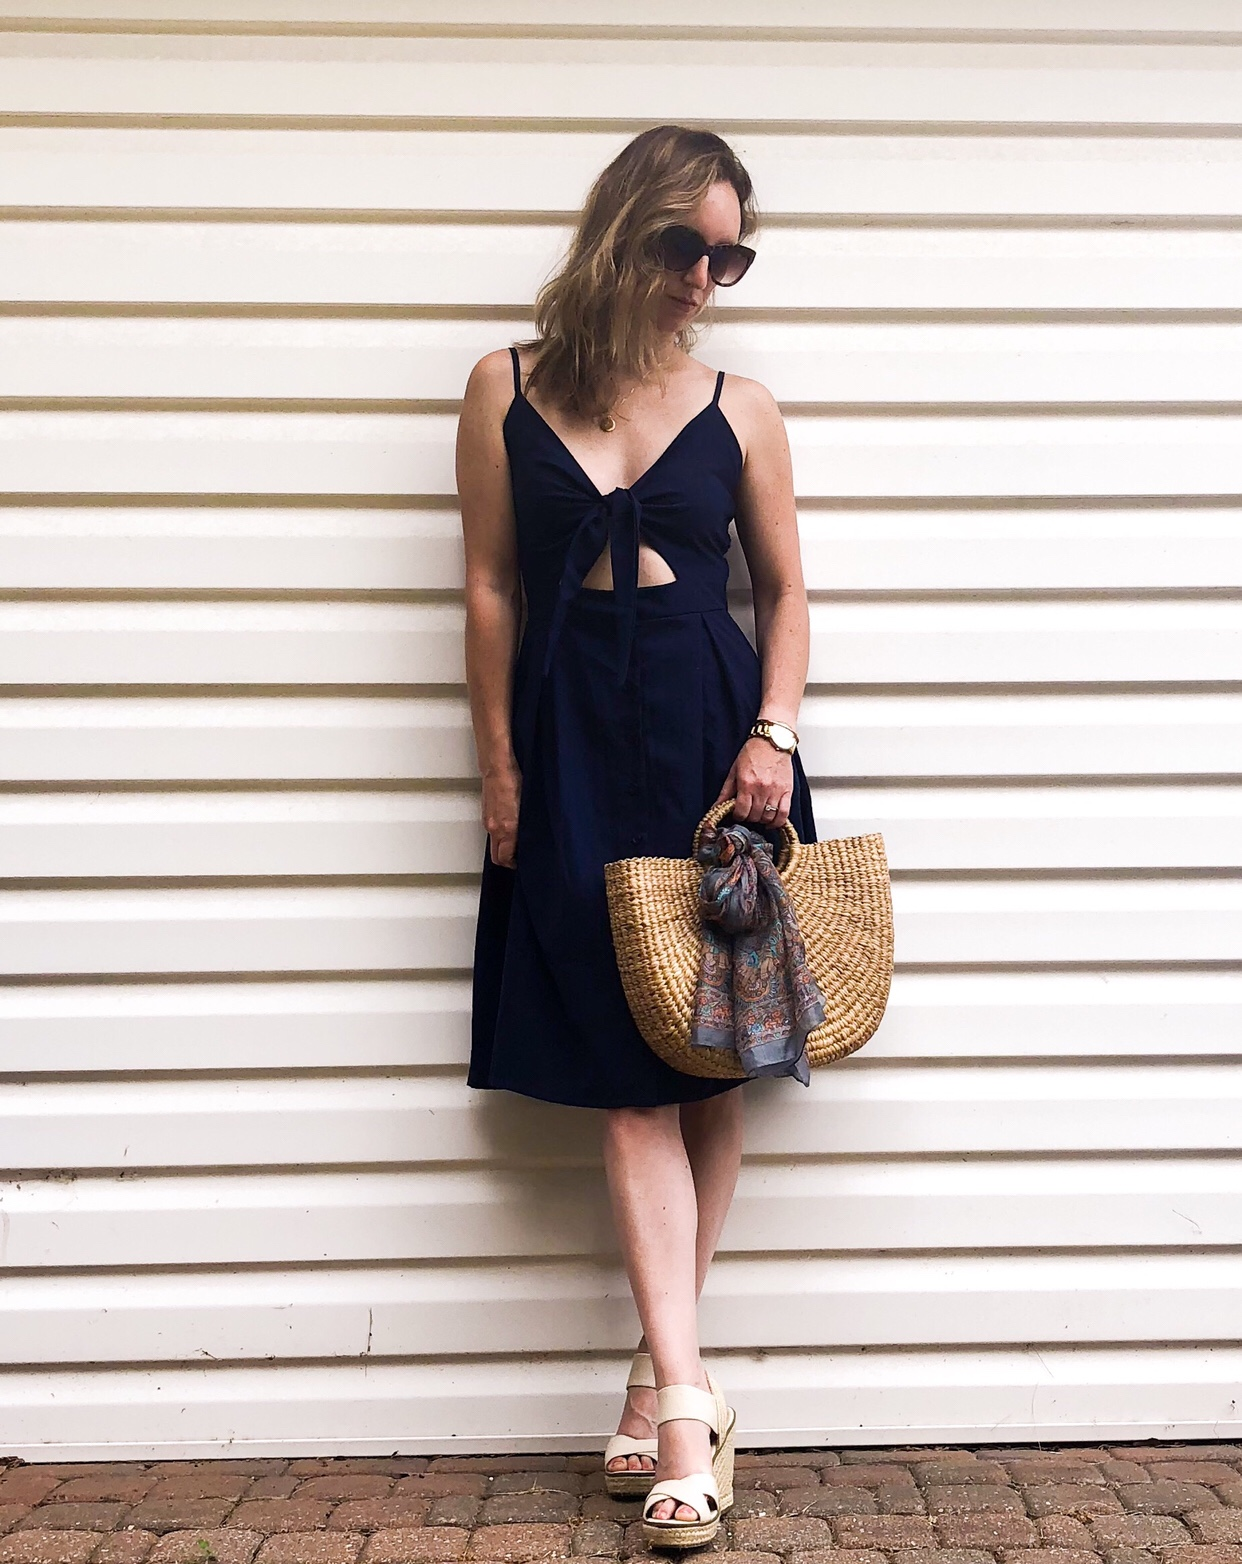 Sweet navy day dress for summer #daydress #summerstyle #afforablefashion #strawhandbag #outfitinspo